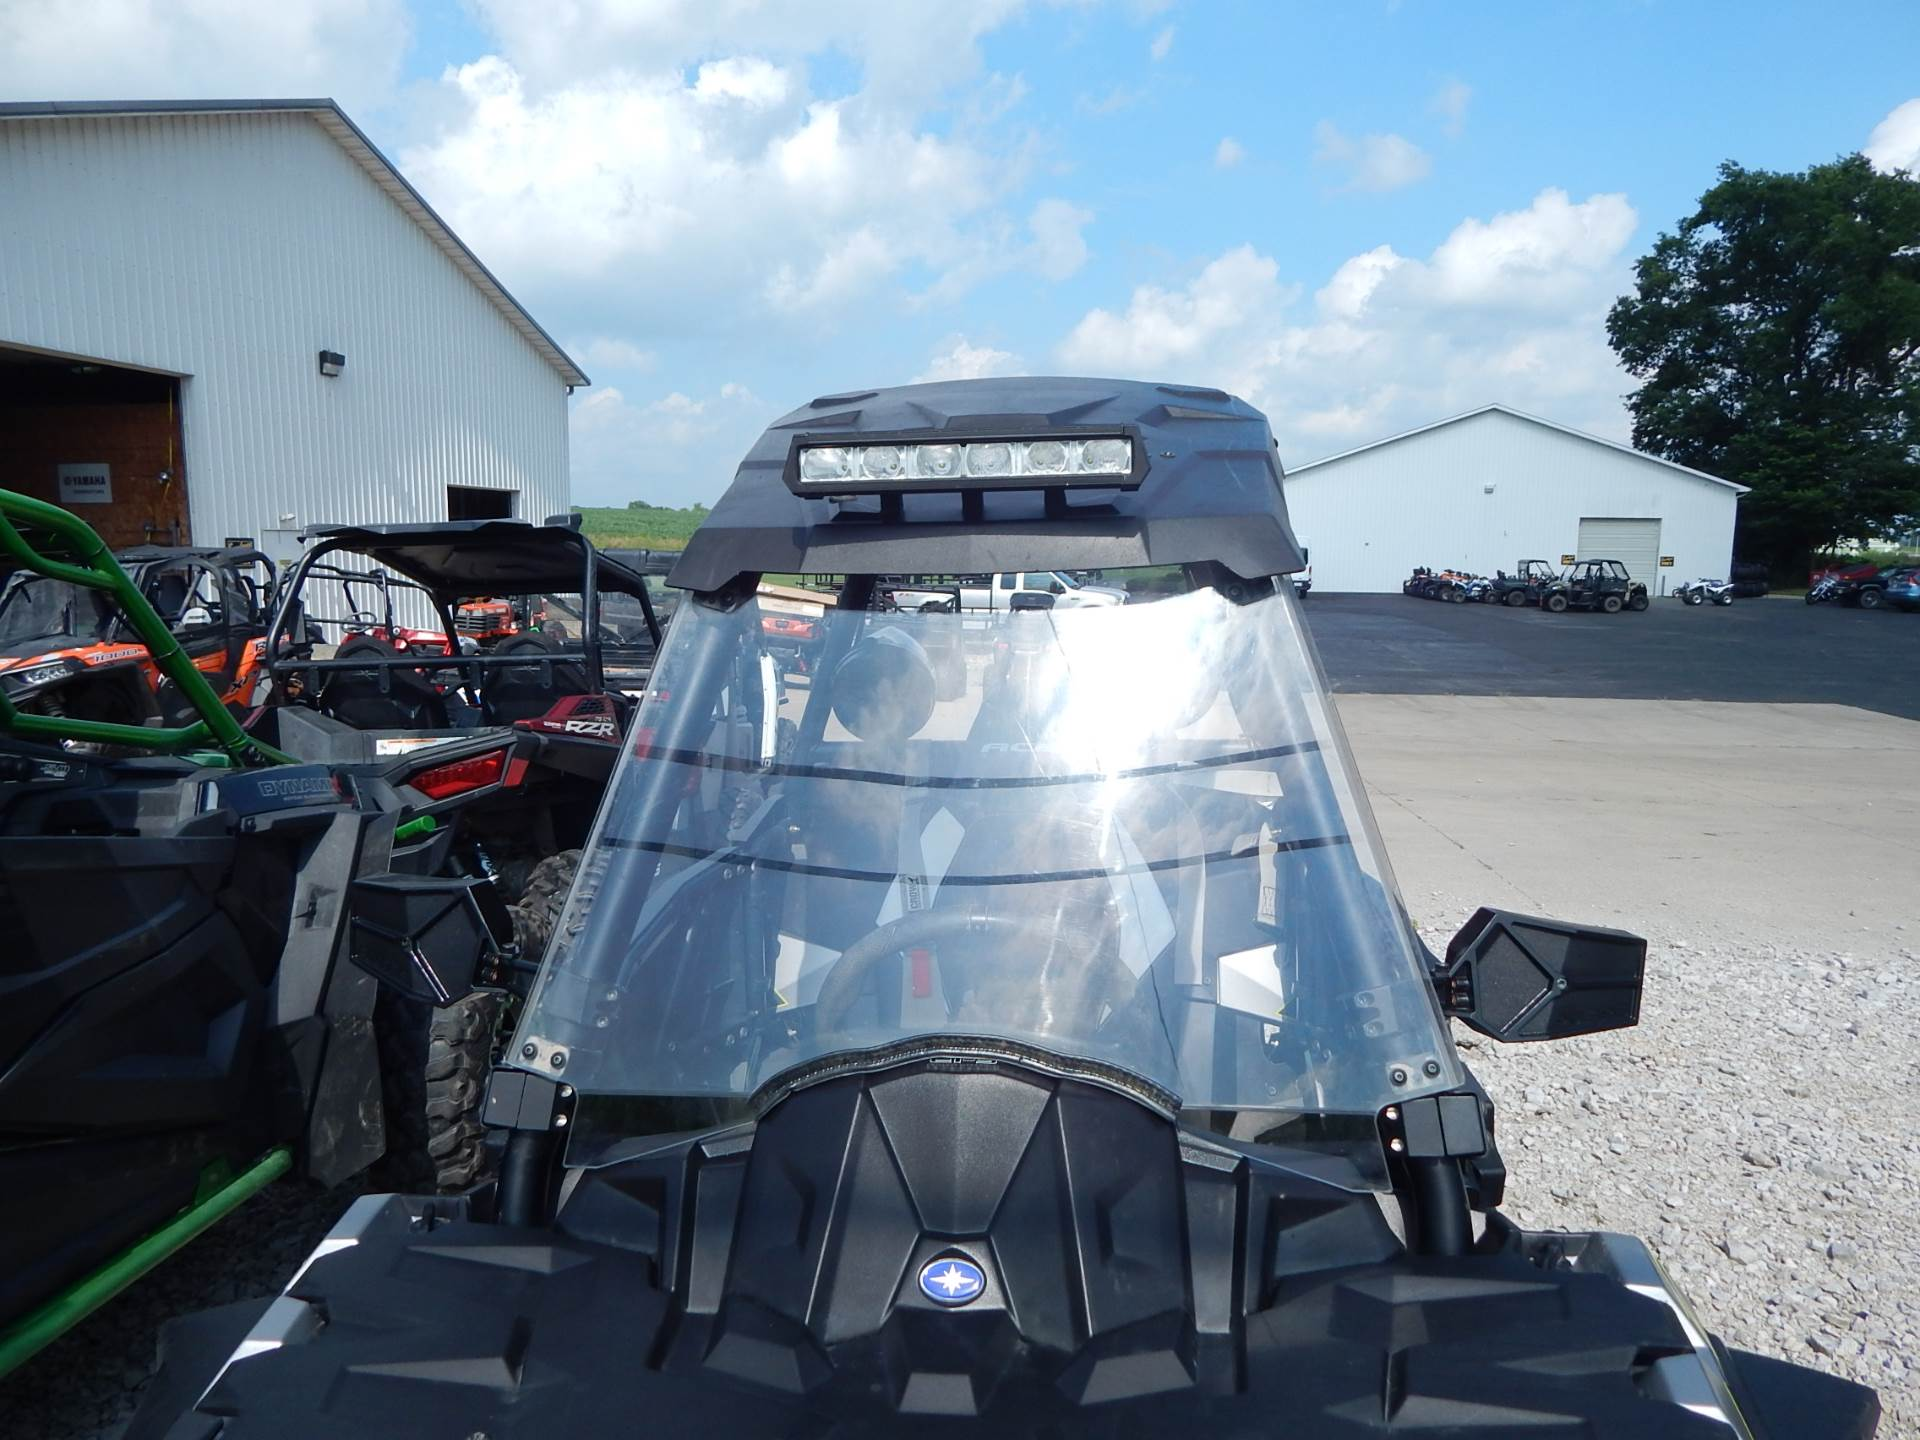 2017 Polaris Ace 900 XC in Carroll, Ohio - Photo 4